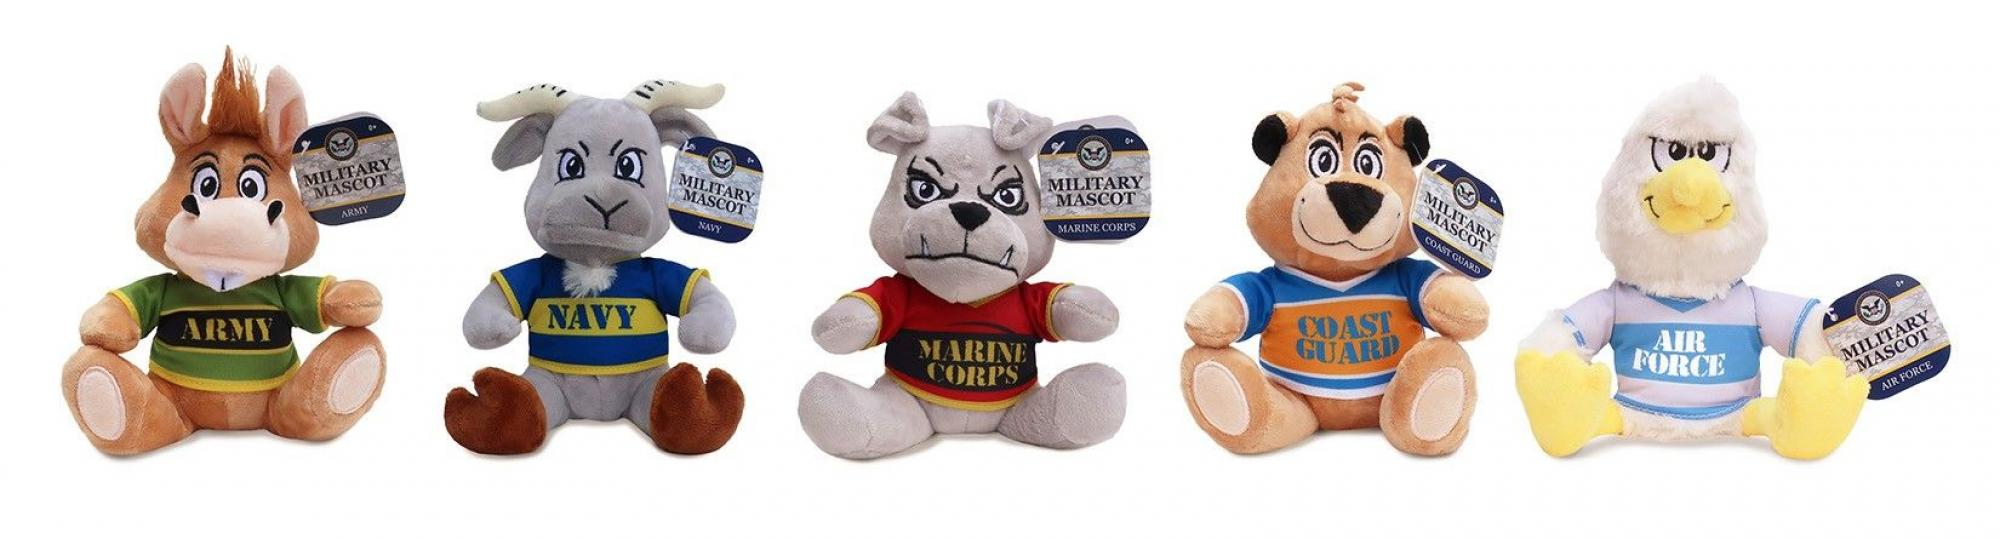 Save on Military Mascots